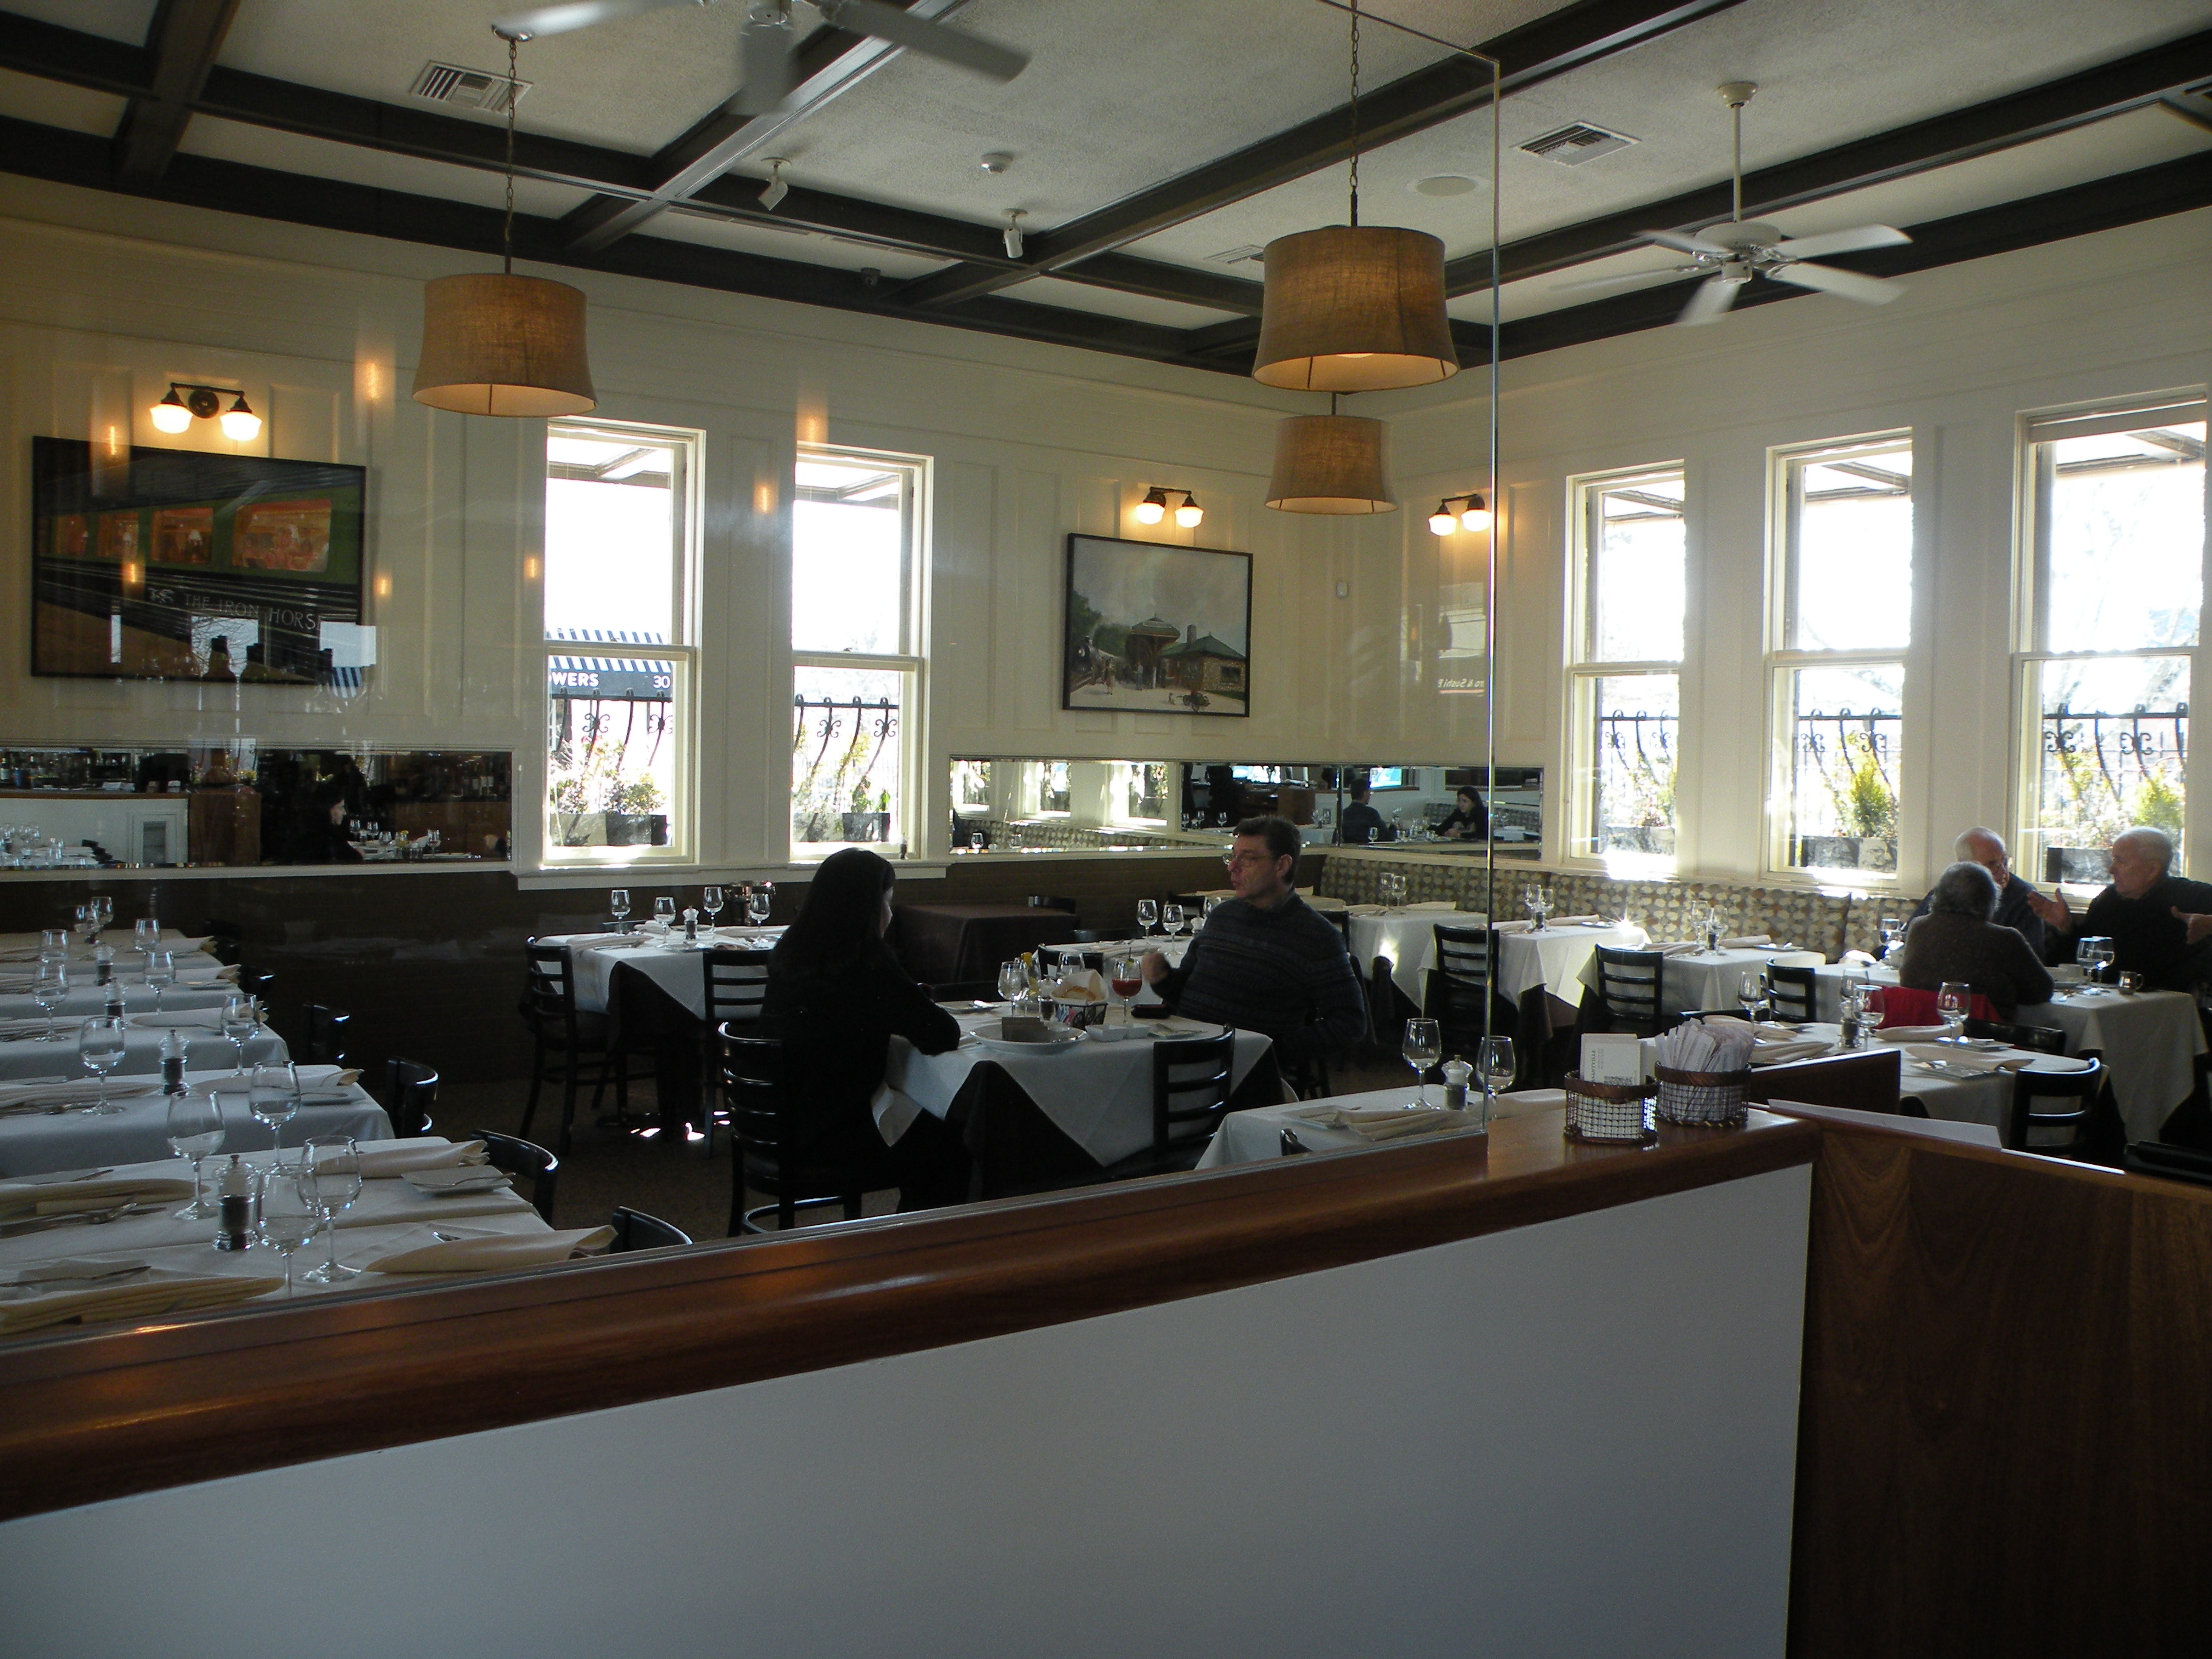 Restaurant S In Pleasentville Ny By The Train Station